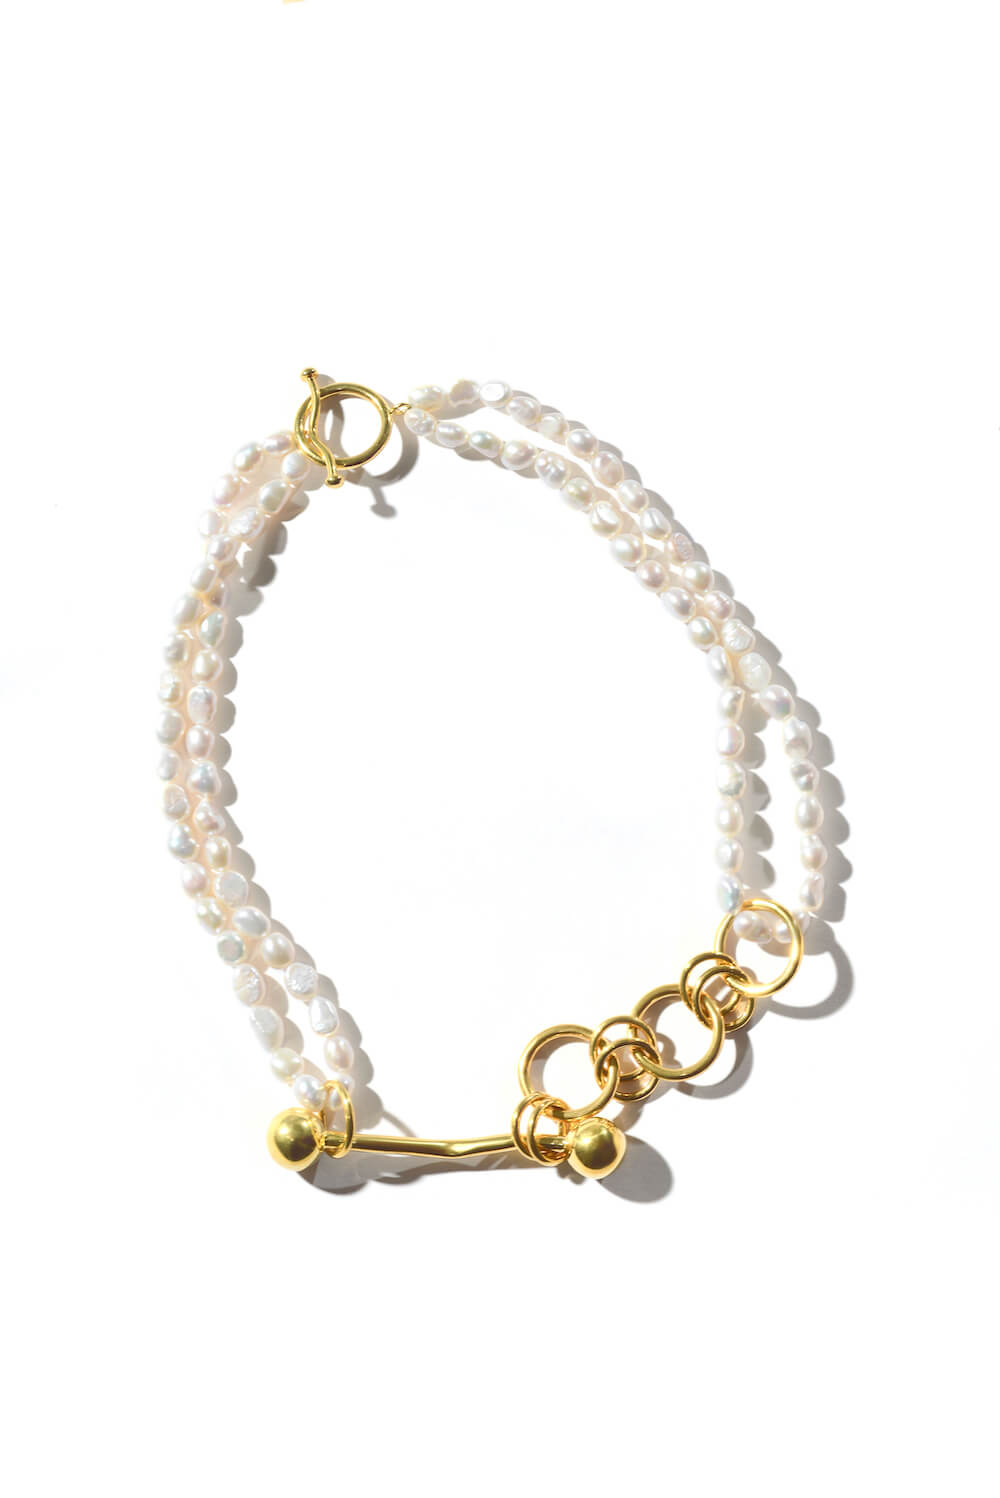 GABRIELLE GOLD-PLATED PEARL NECKLACE